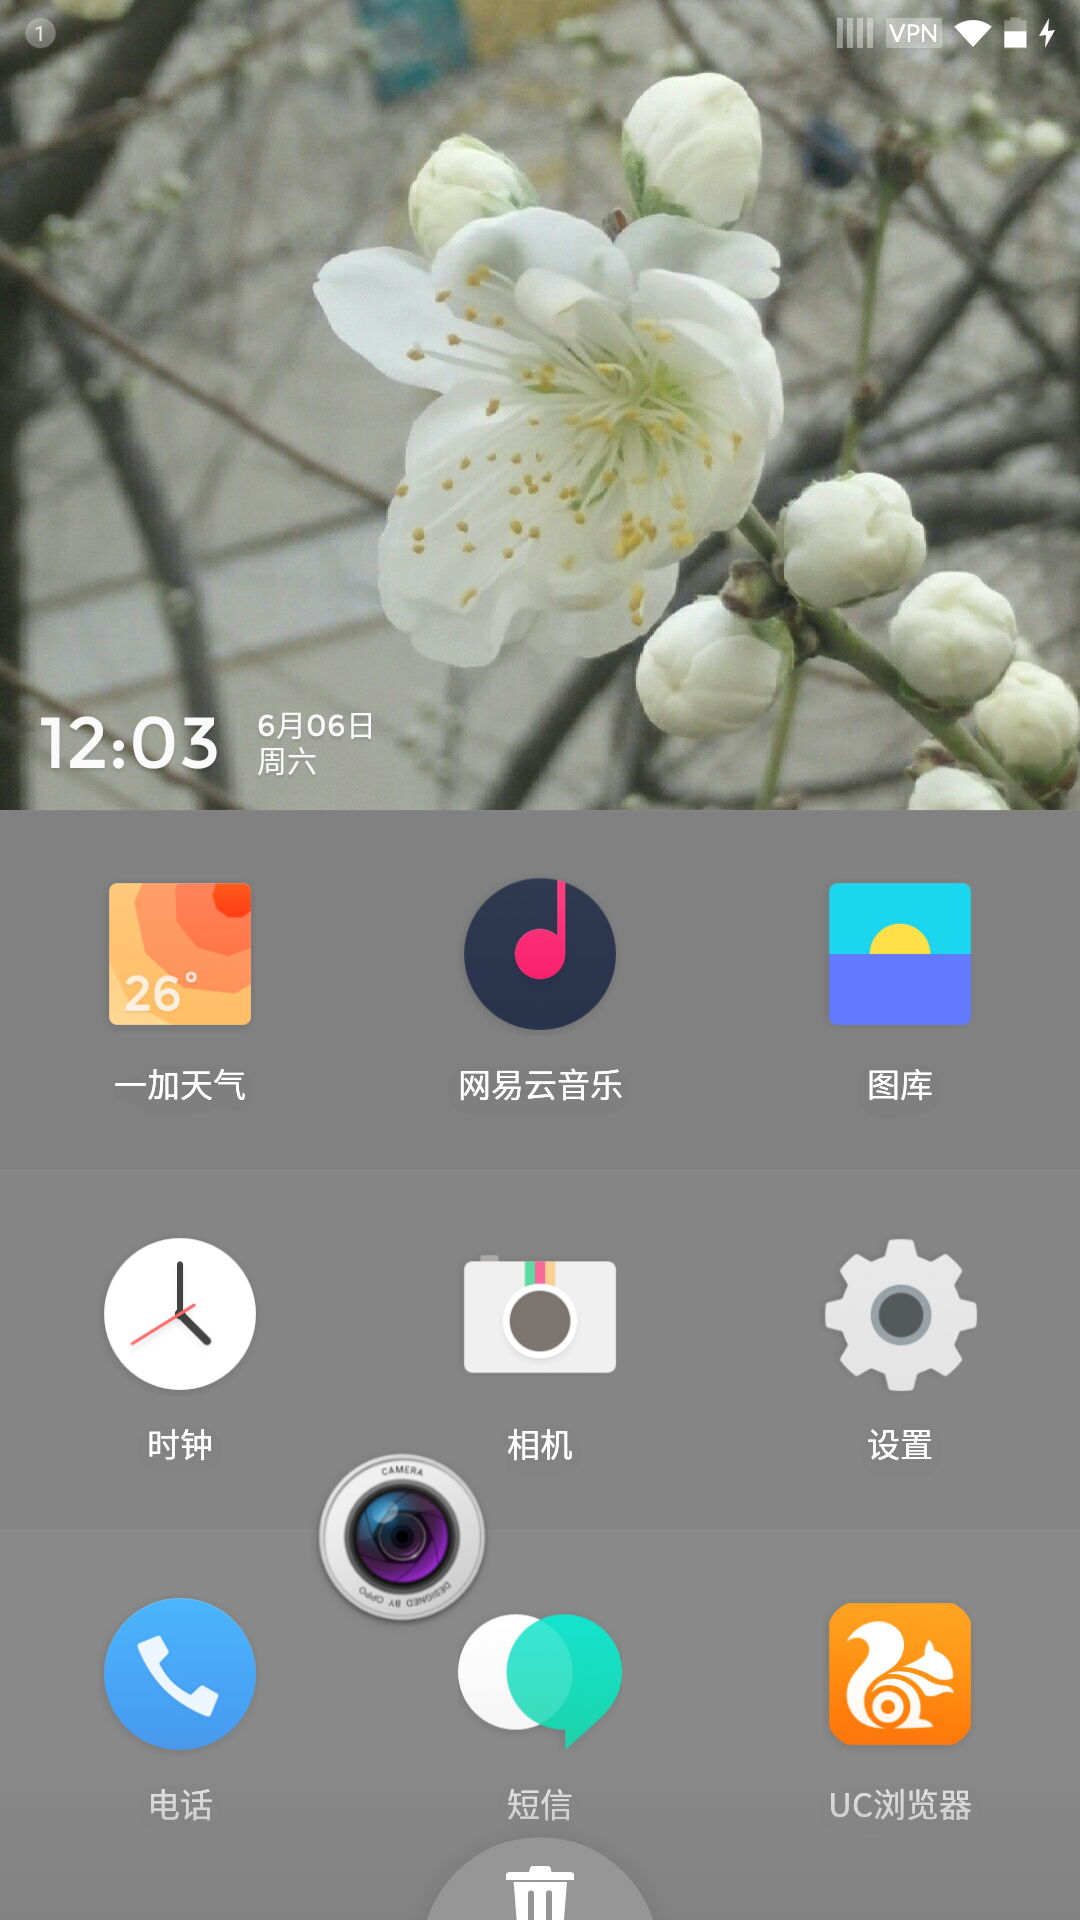 Screenshot_2015-06-06-12-03-09.png